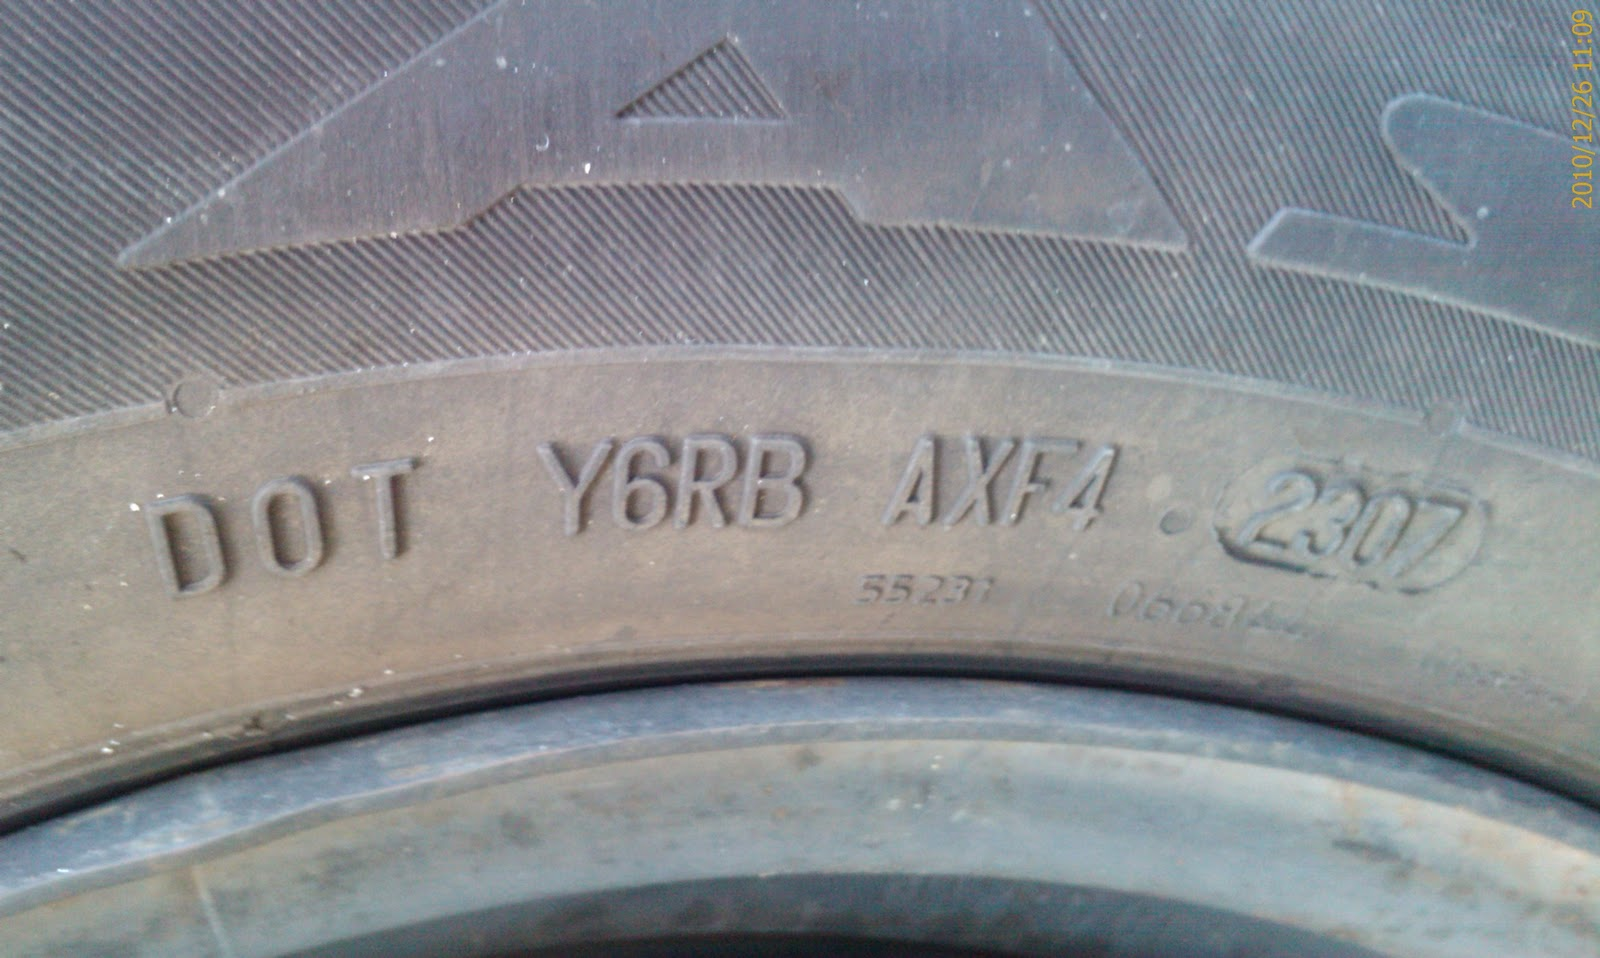 dating tyres Dating back to 1940's, when run flat tyres were developed, they first served as bulletproof tyres on military vehicles during wwii ongoing research soon endorsed run flat tyres to become suitable for passenger cars.